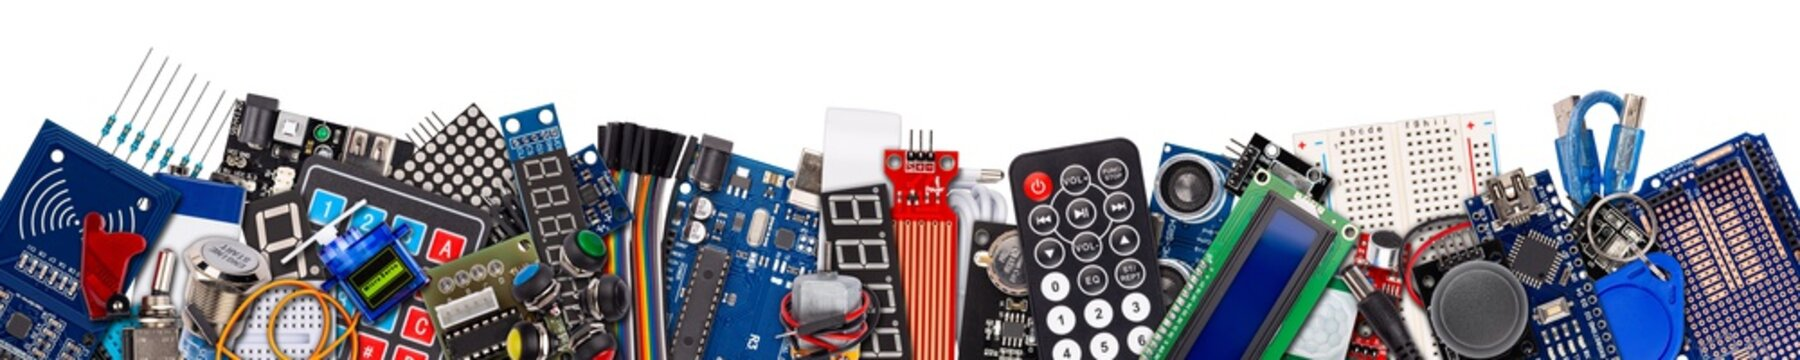 wide panorama banner collage with copy space of microcontroller board display sensor button switches cable wire accessories and equipment electronics concept panorama isolated white background